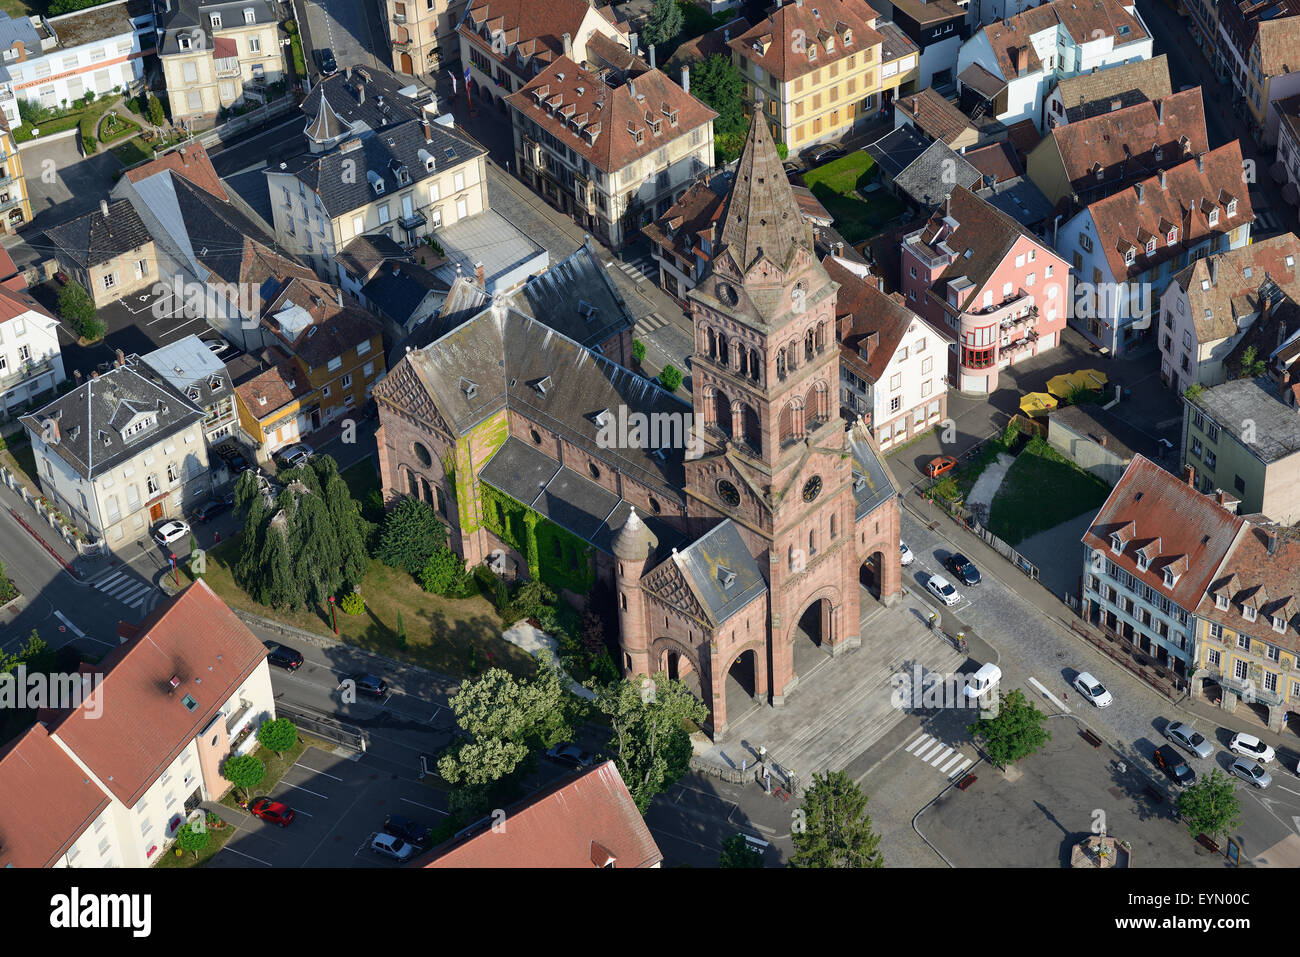 PROTESTANT CHURCH (aerial view). 'Église Portestante' of Munster, Vosges Mountains, Alsace, France. - Stock Image